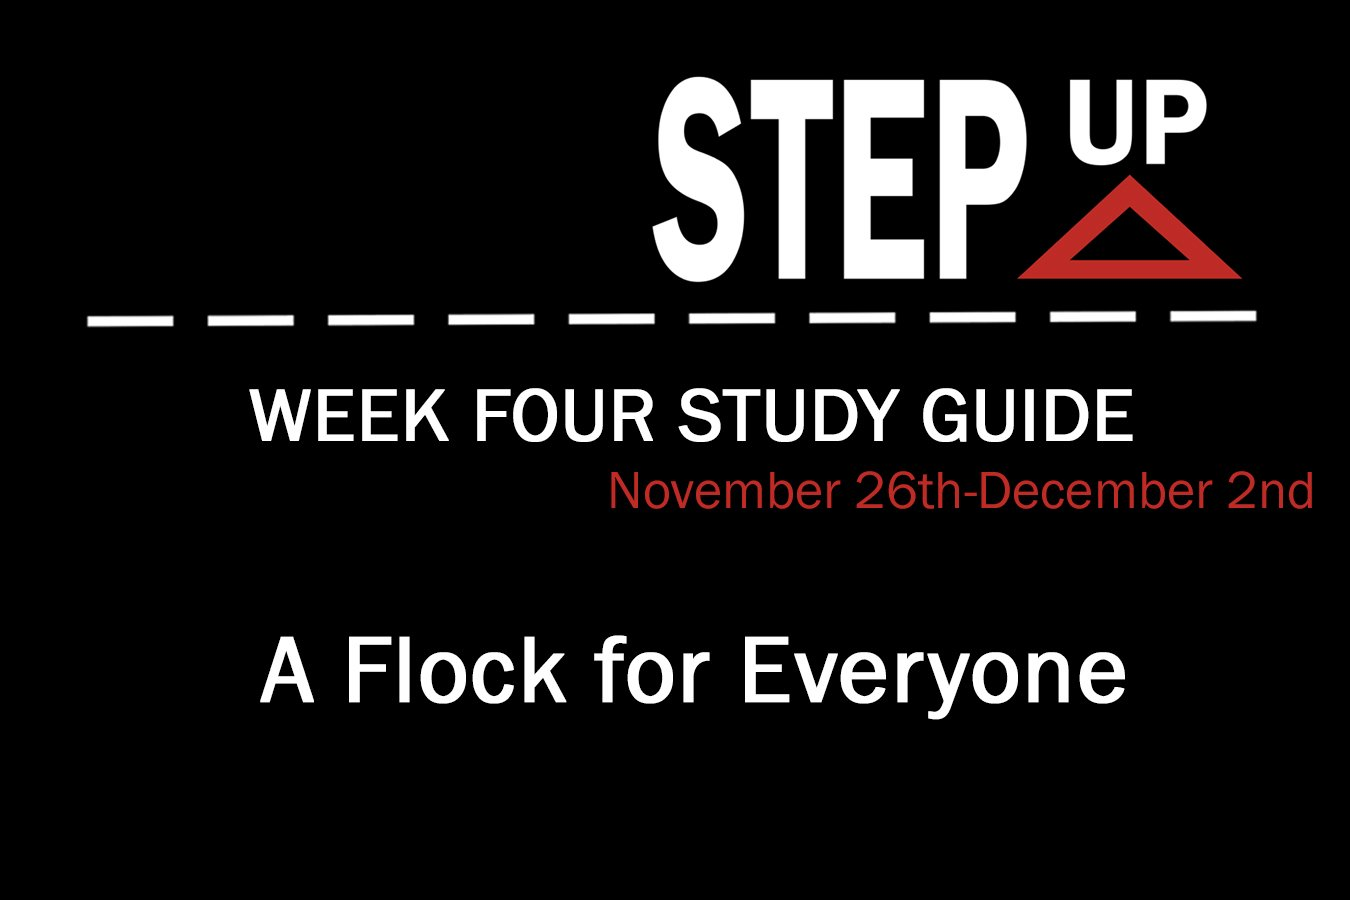 Step Up: Week Four Study Guide